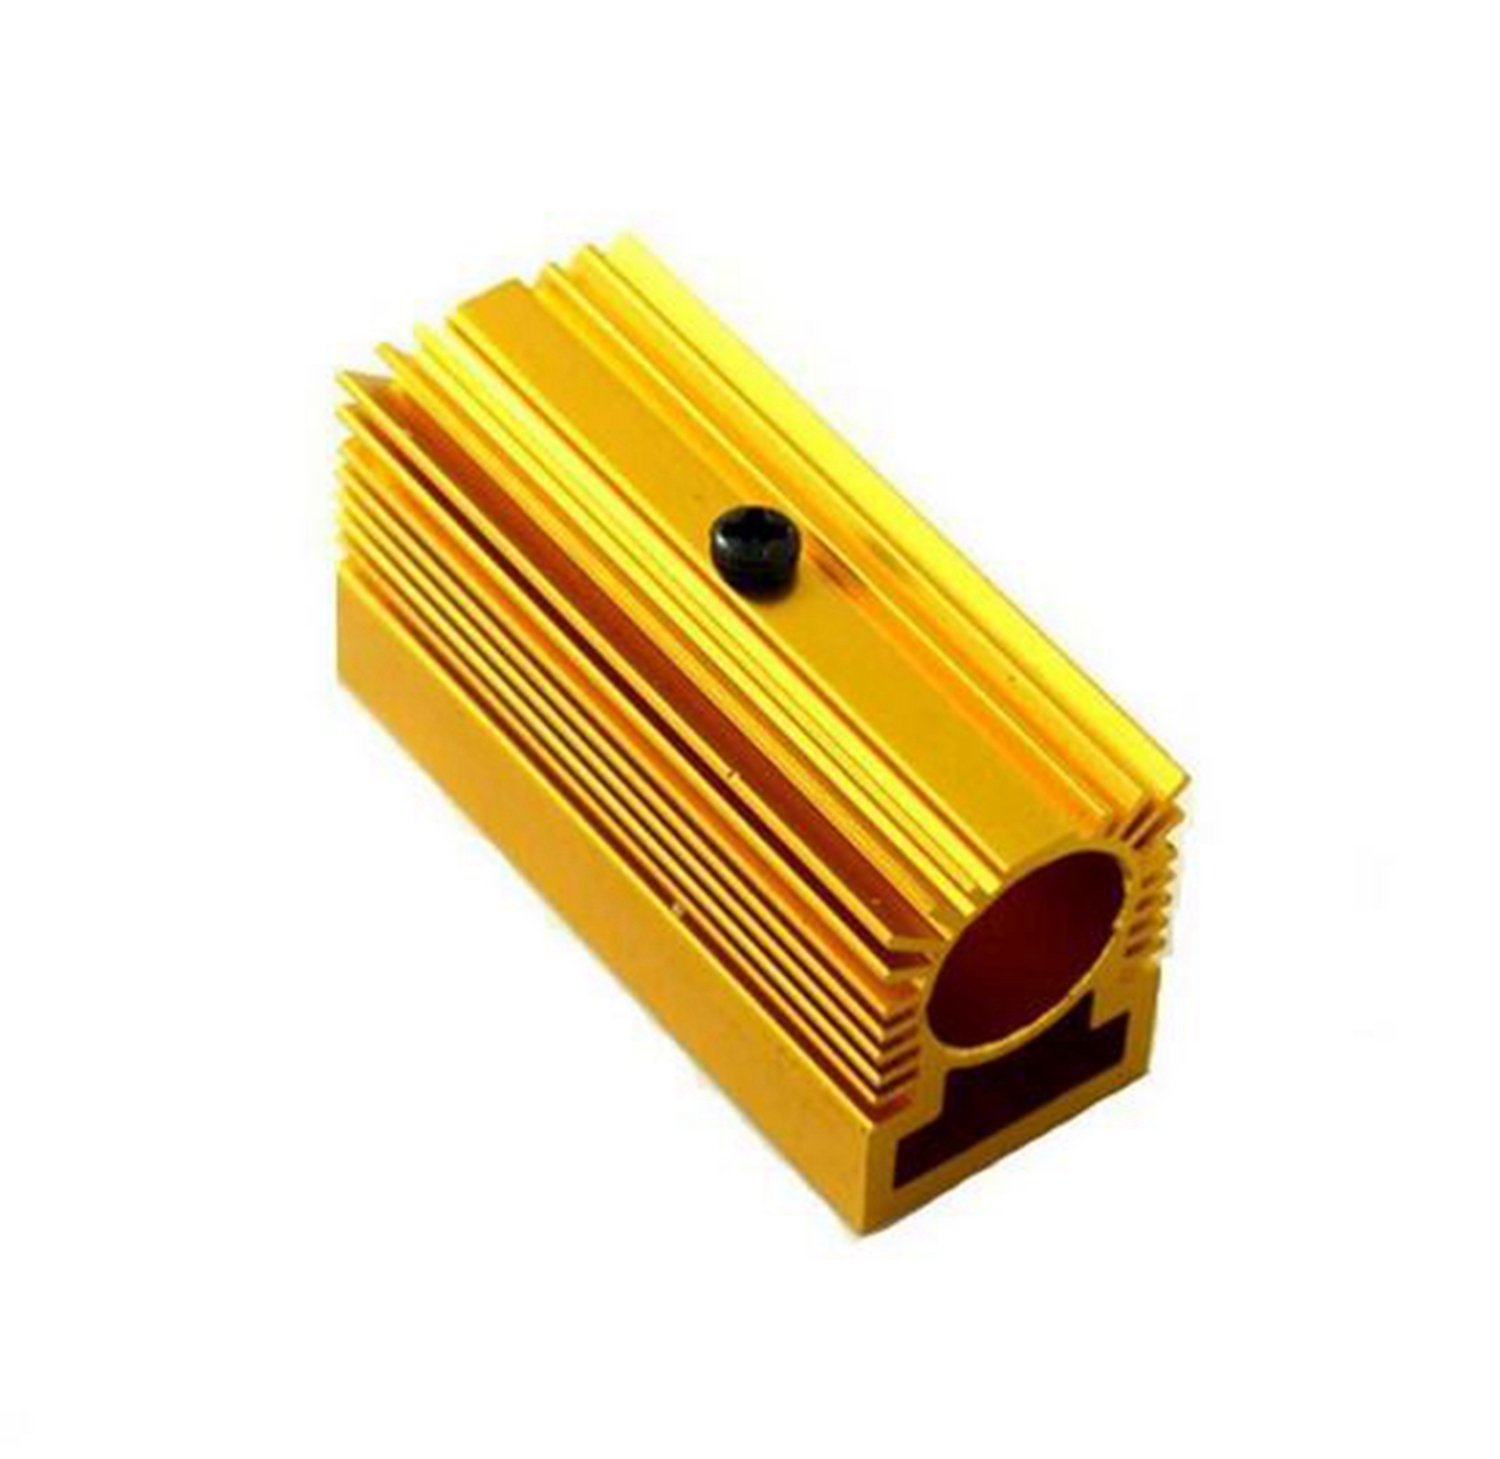 3pcs x Golden Aluminium Cooling Heatsink for 12mm Laser Modules Heat Sink 20x27x50mm